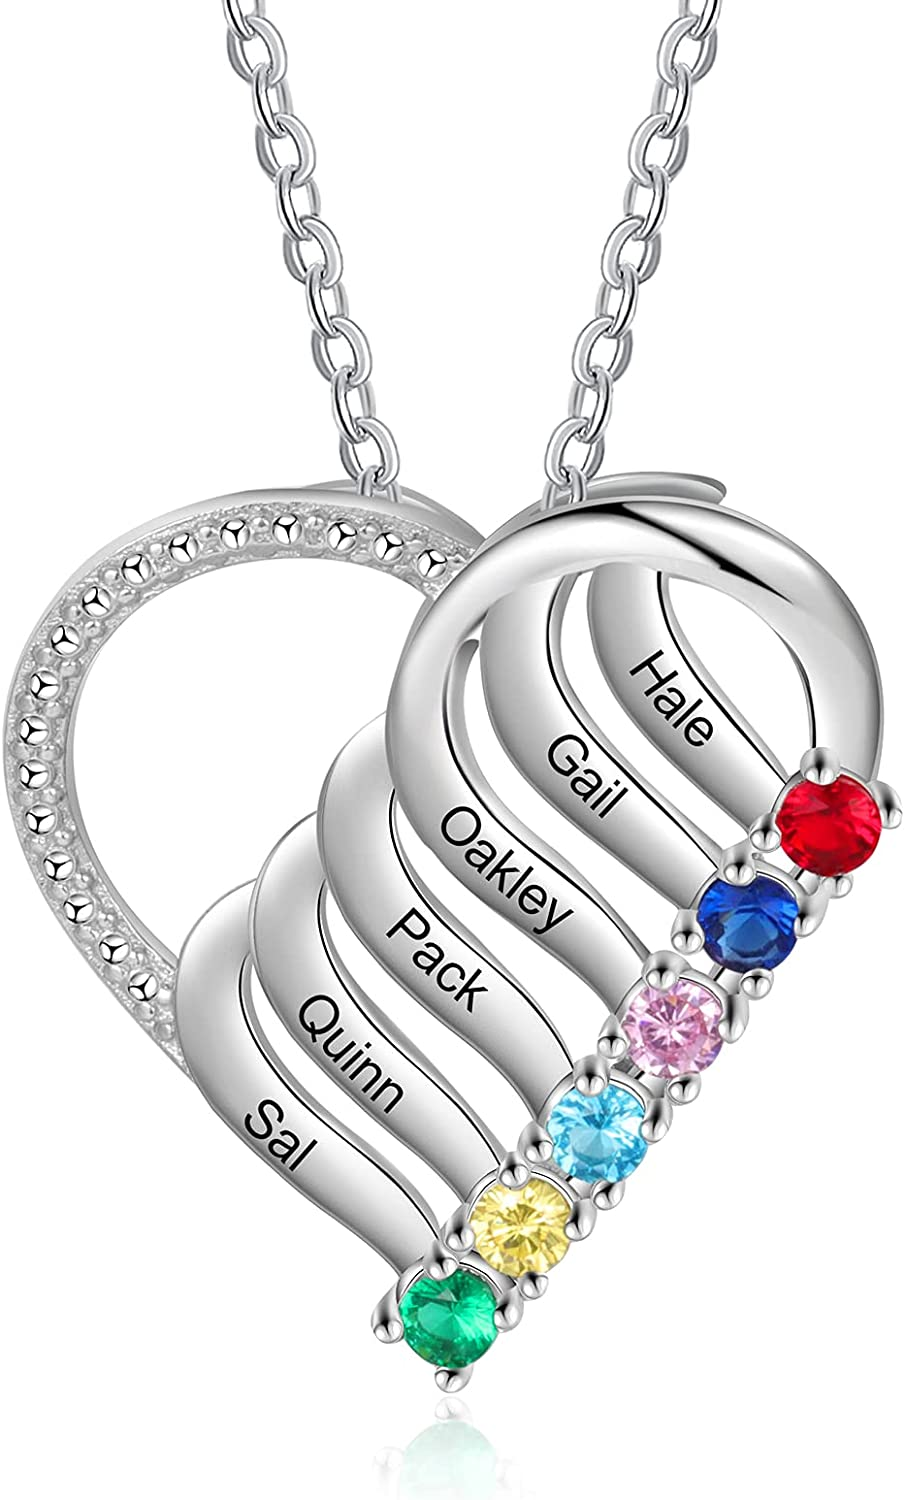 cheap Grandma Max 76% OFF Heart Necklace with 4 Birthstones Simulated Personalized